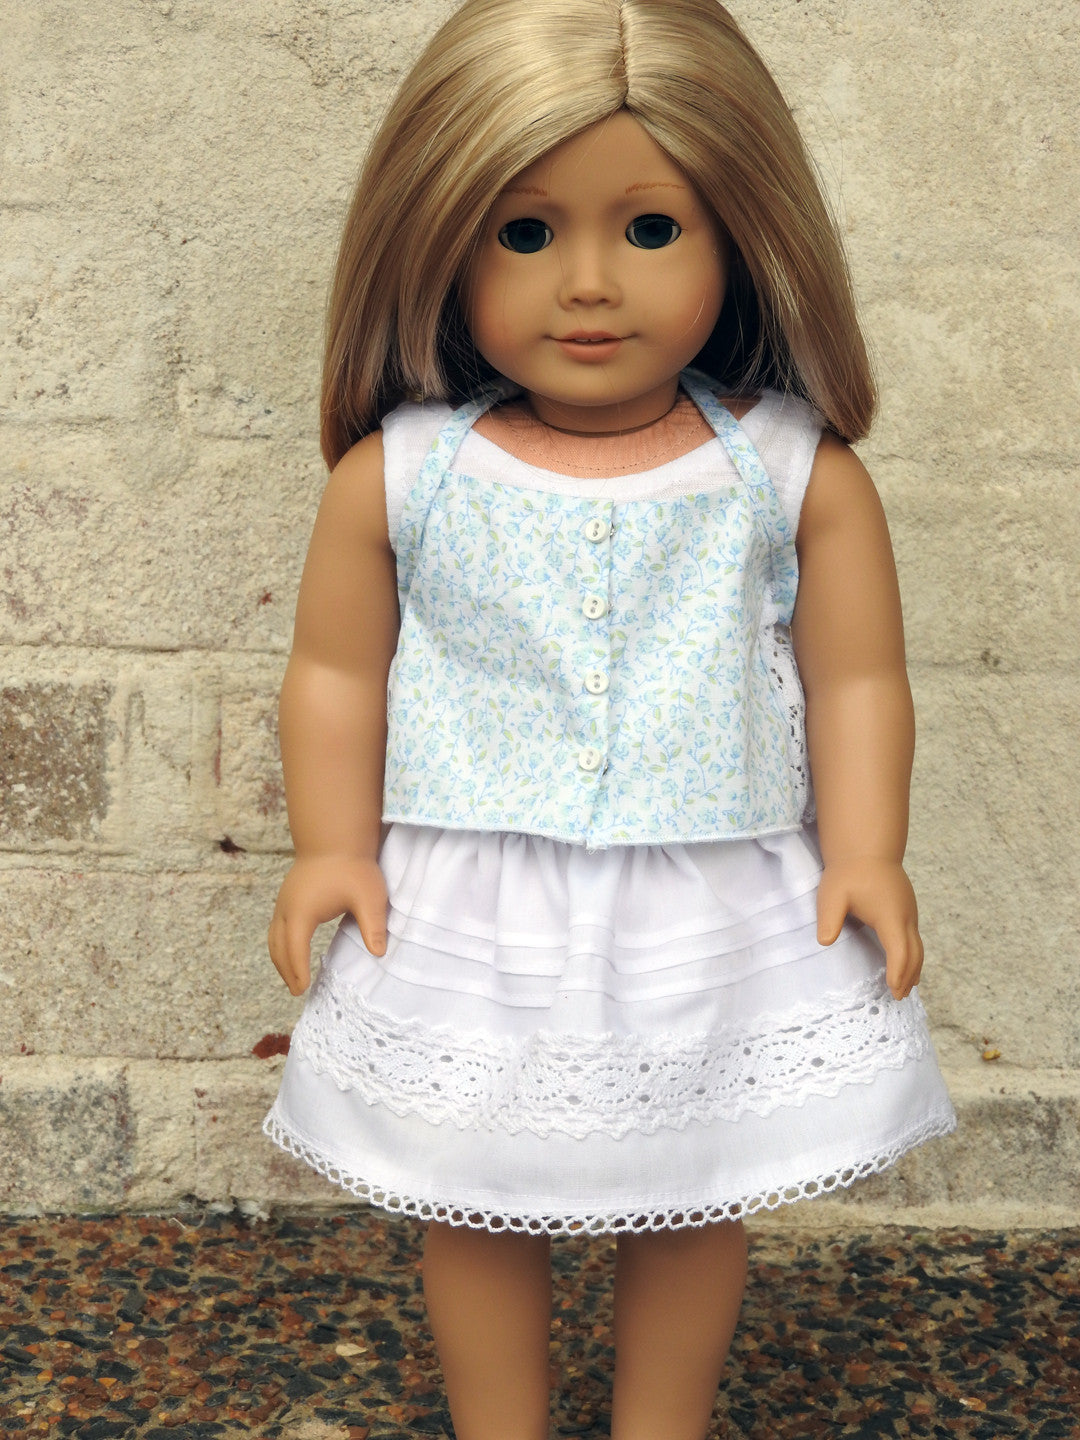 American Girl Doll Handmade Spring and Summer Skirt, Cami, and Tank Top